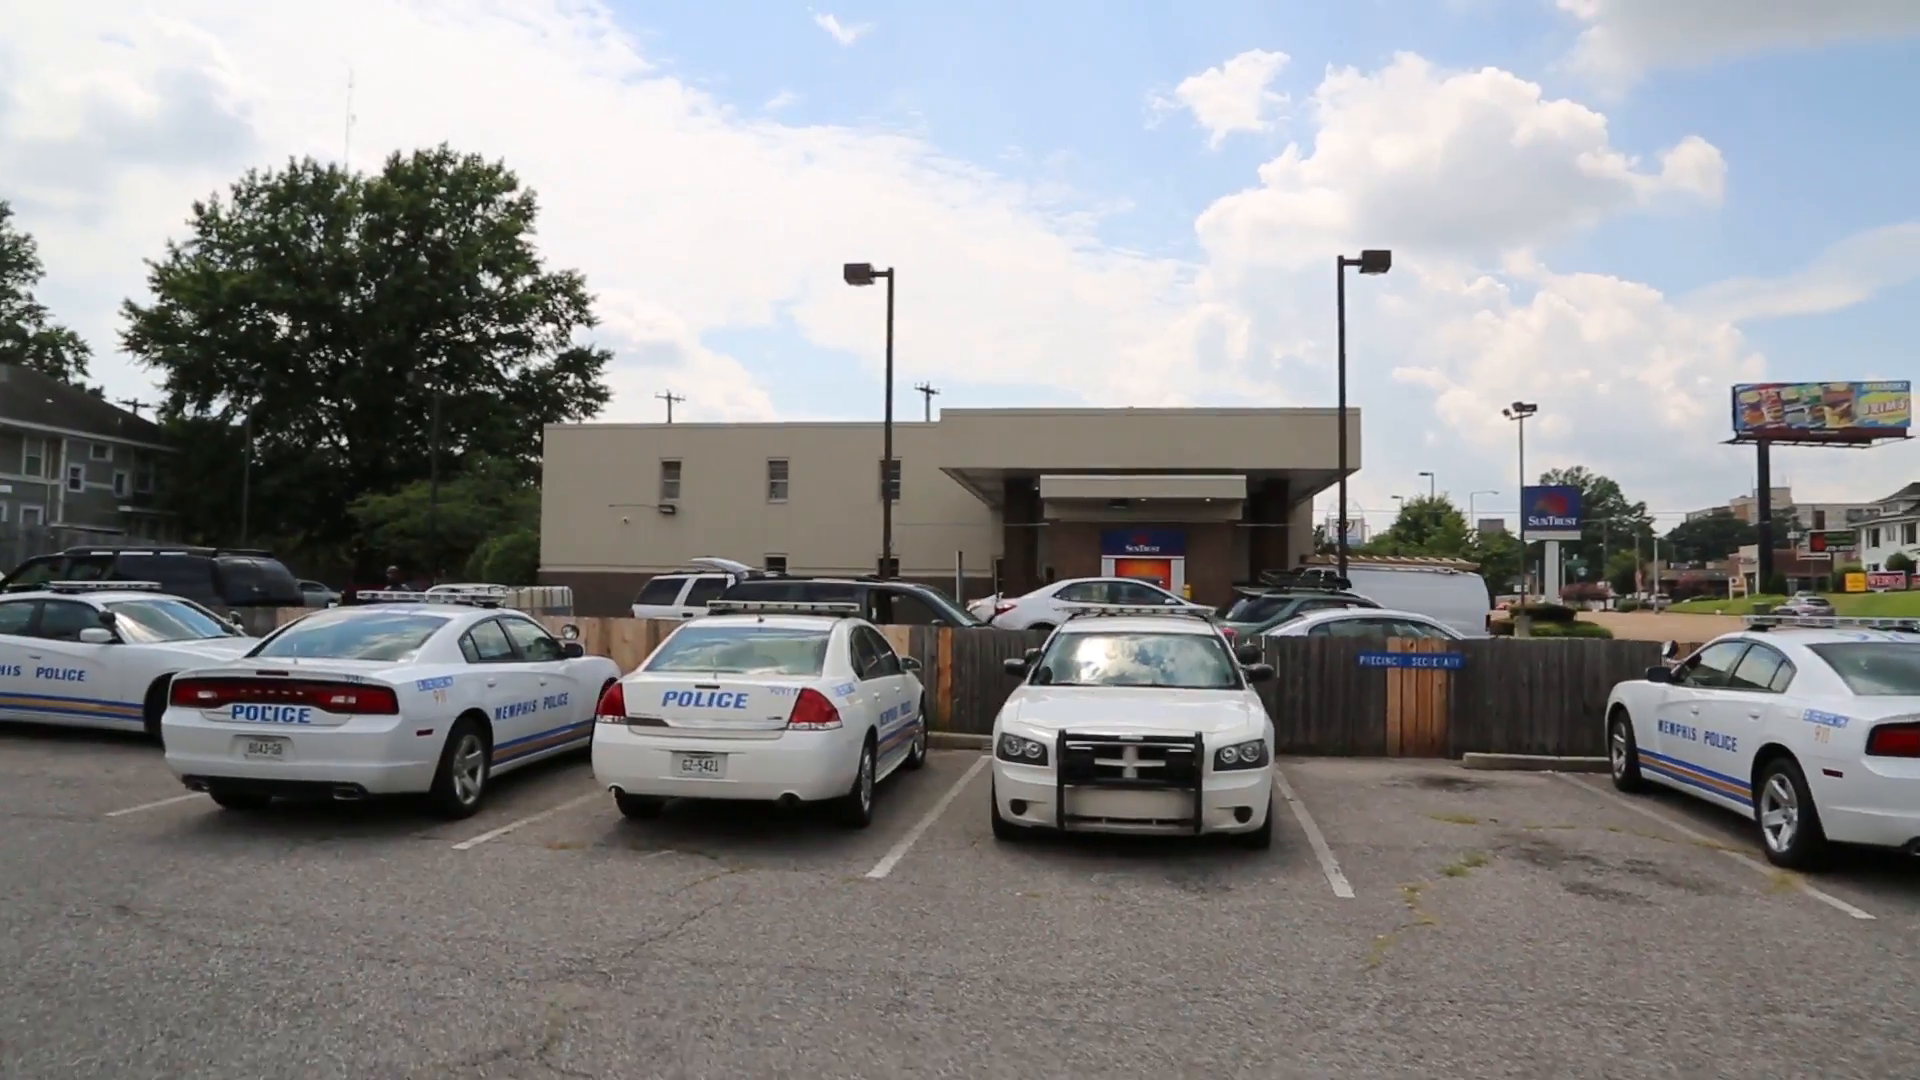 Memphis Police department parking lot full of cars Stock Video Footage -  VideoBlocks - Parking Lot PNG HD